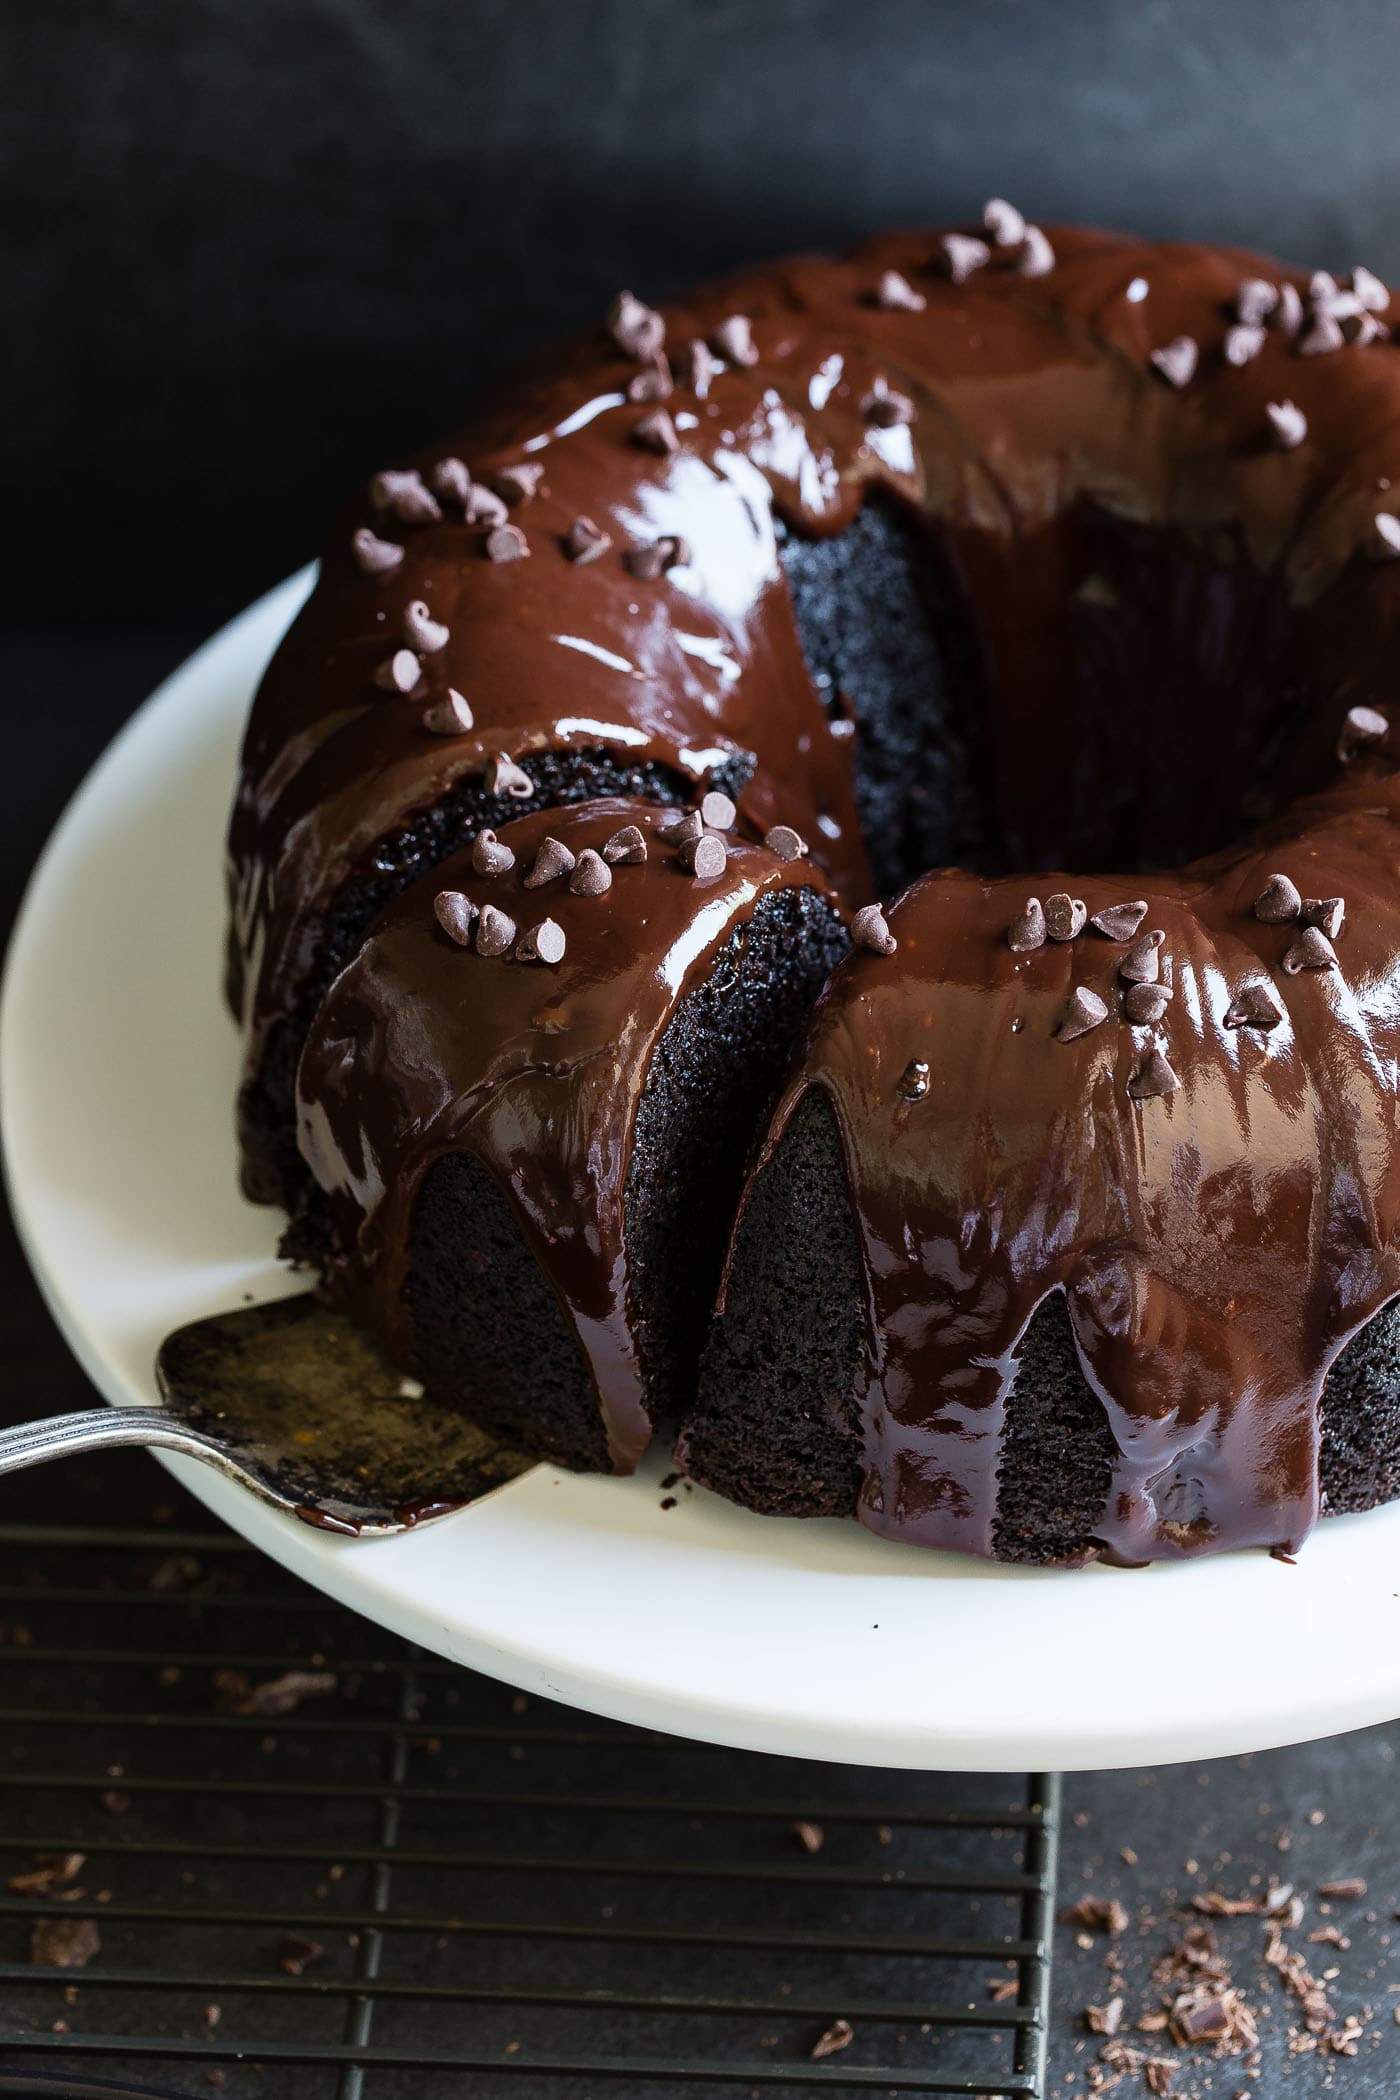 A chocolate zucchini bundt cake with chocolate glaze. The cake is on a white cake plate and a cake server is resting under a piece that has been cut.